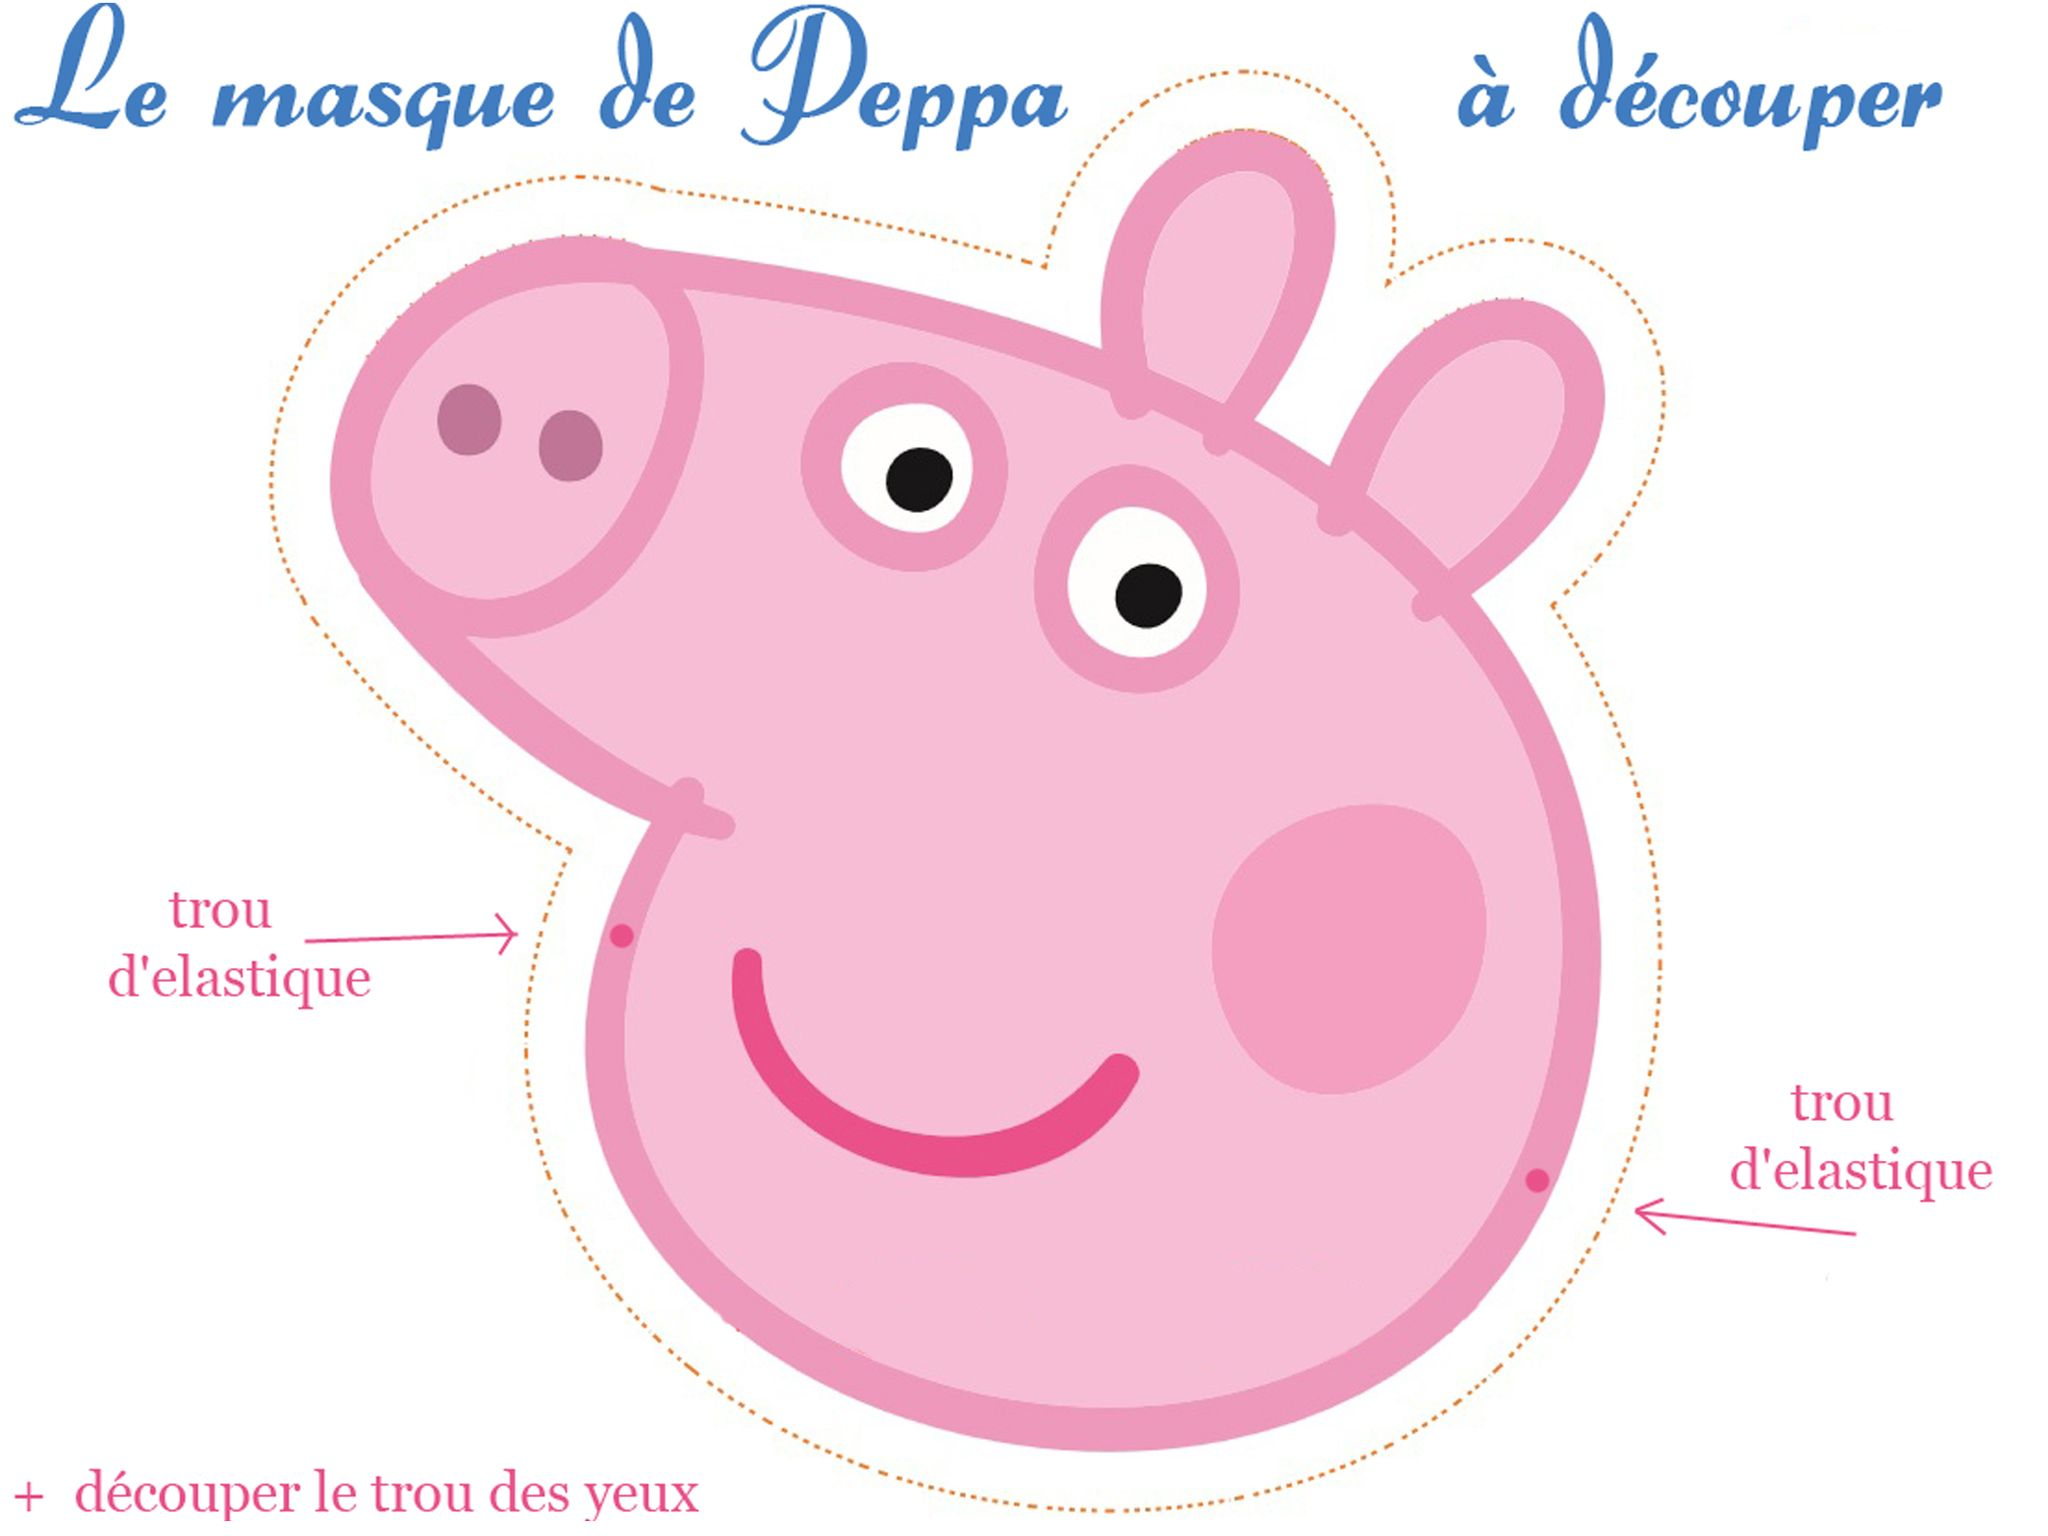 peppa pig 1 et 2 et 3 doudous patrons patterns gabarits fete